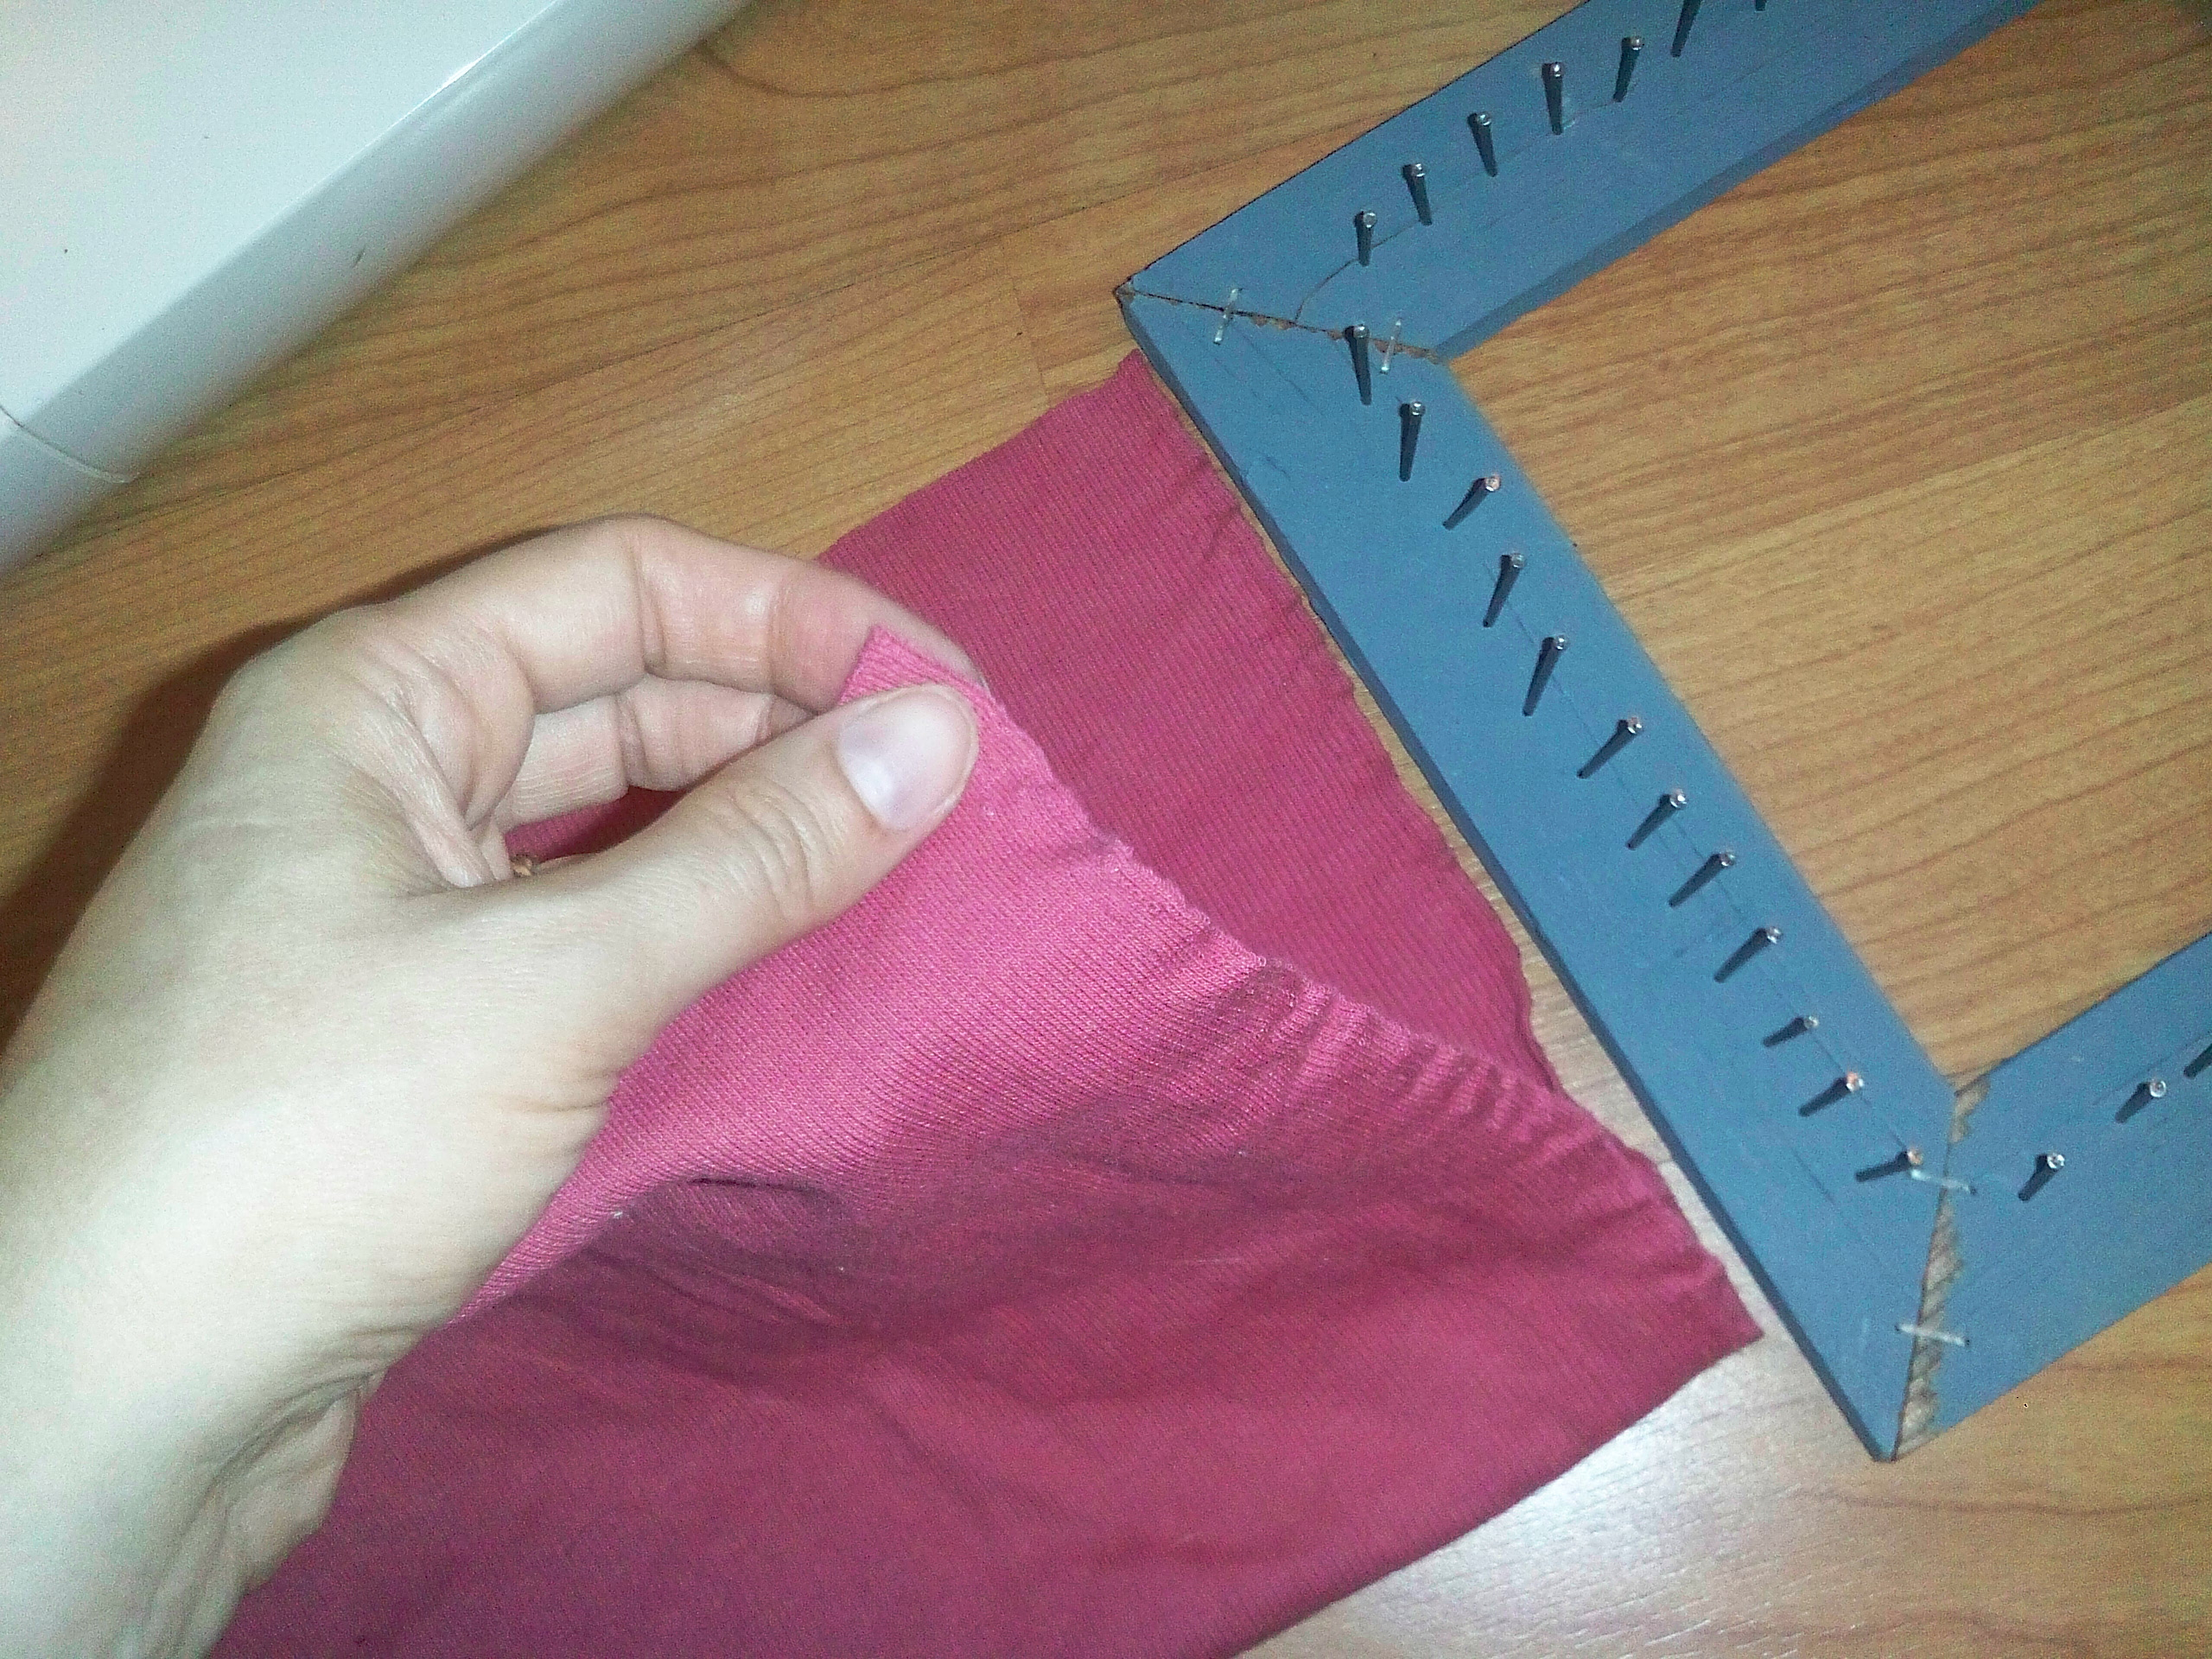 small-potholders-determining-size-of-fabric-loop-2